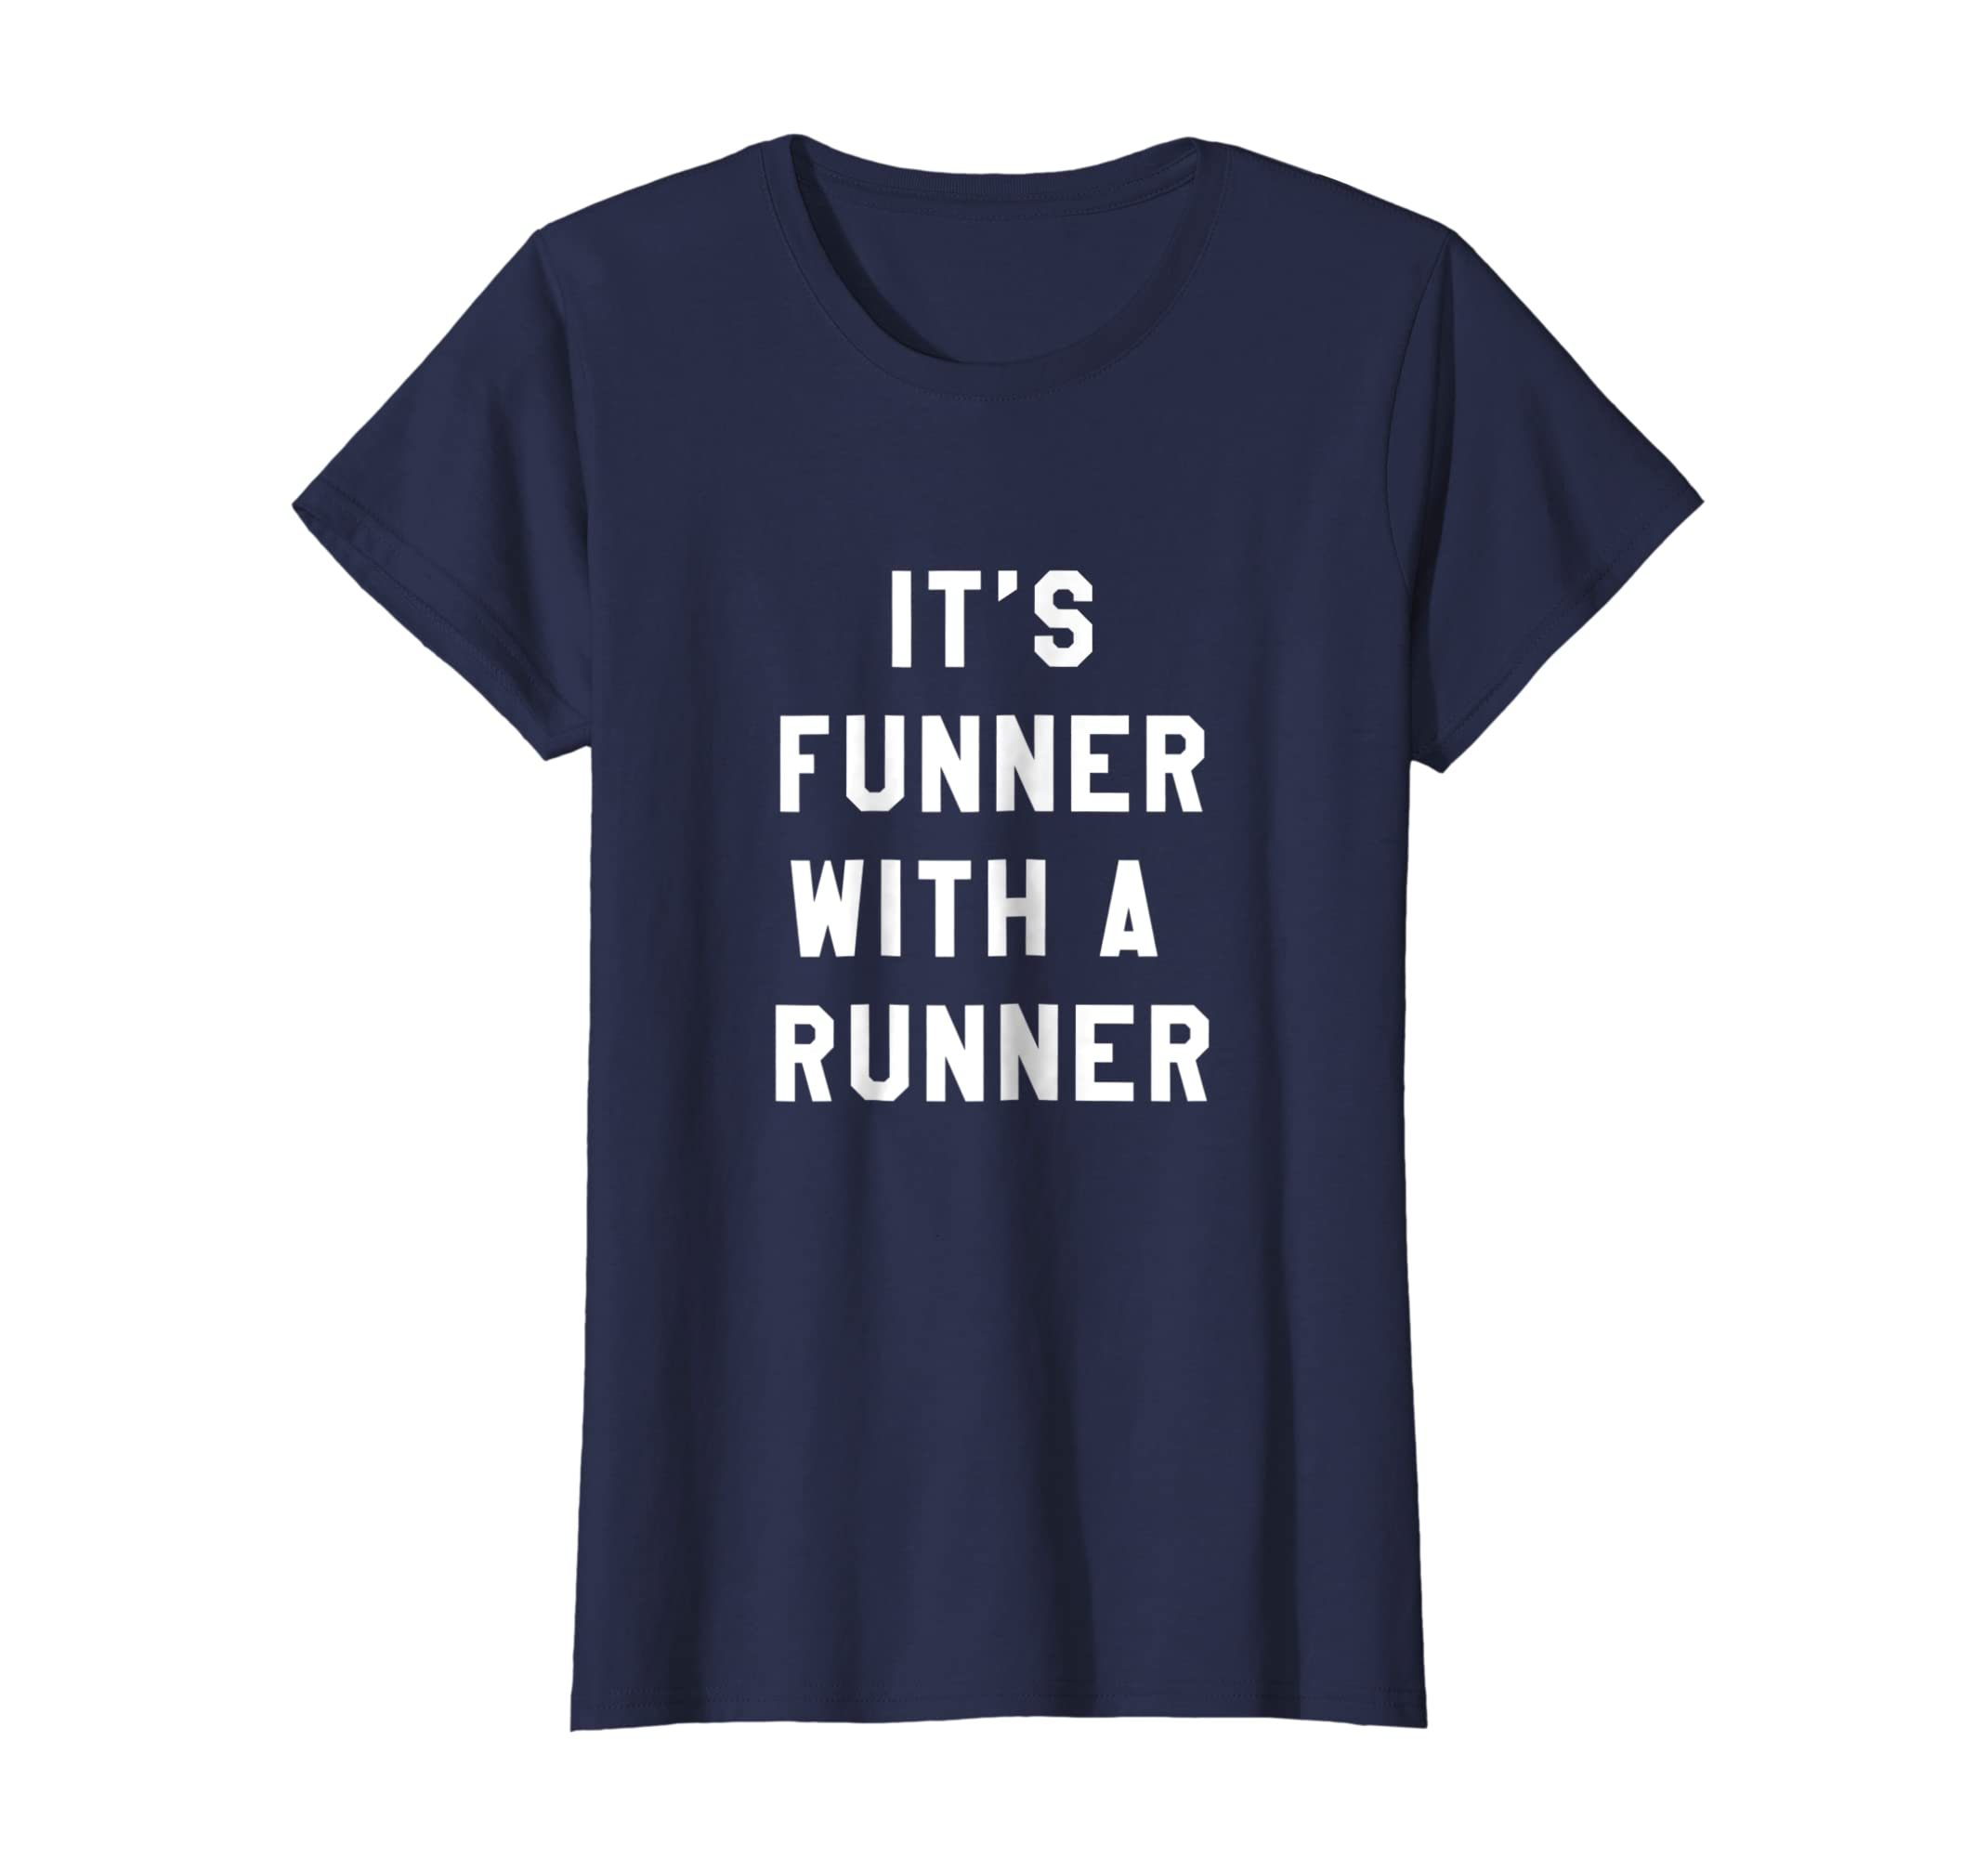 7937006d Amazon.com: It's Funner With A Runner T-Shirt Funny Running Shirts Run T:  Clothing